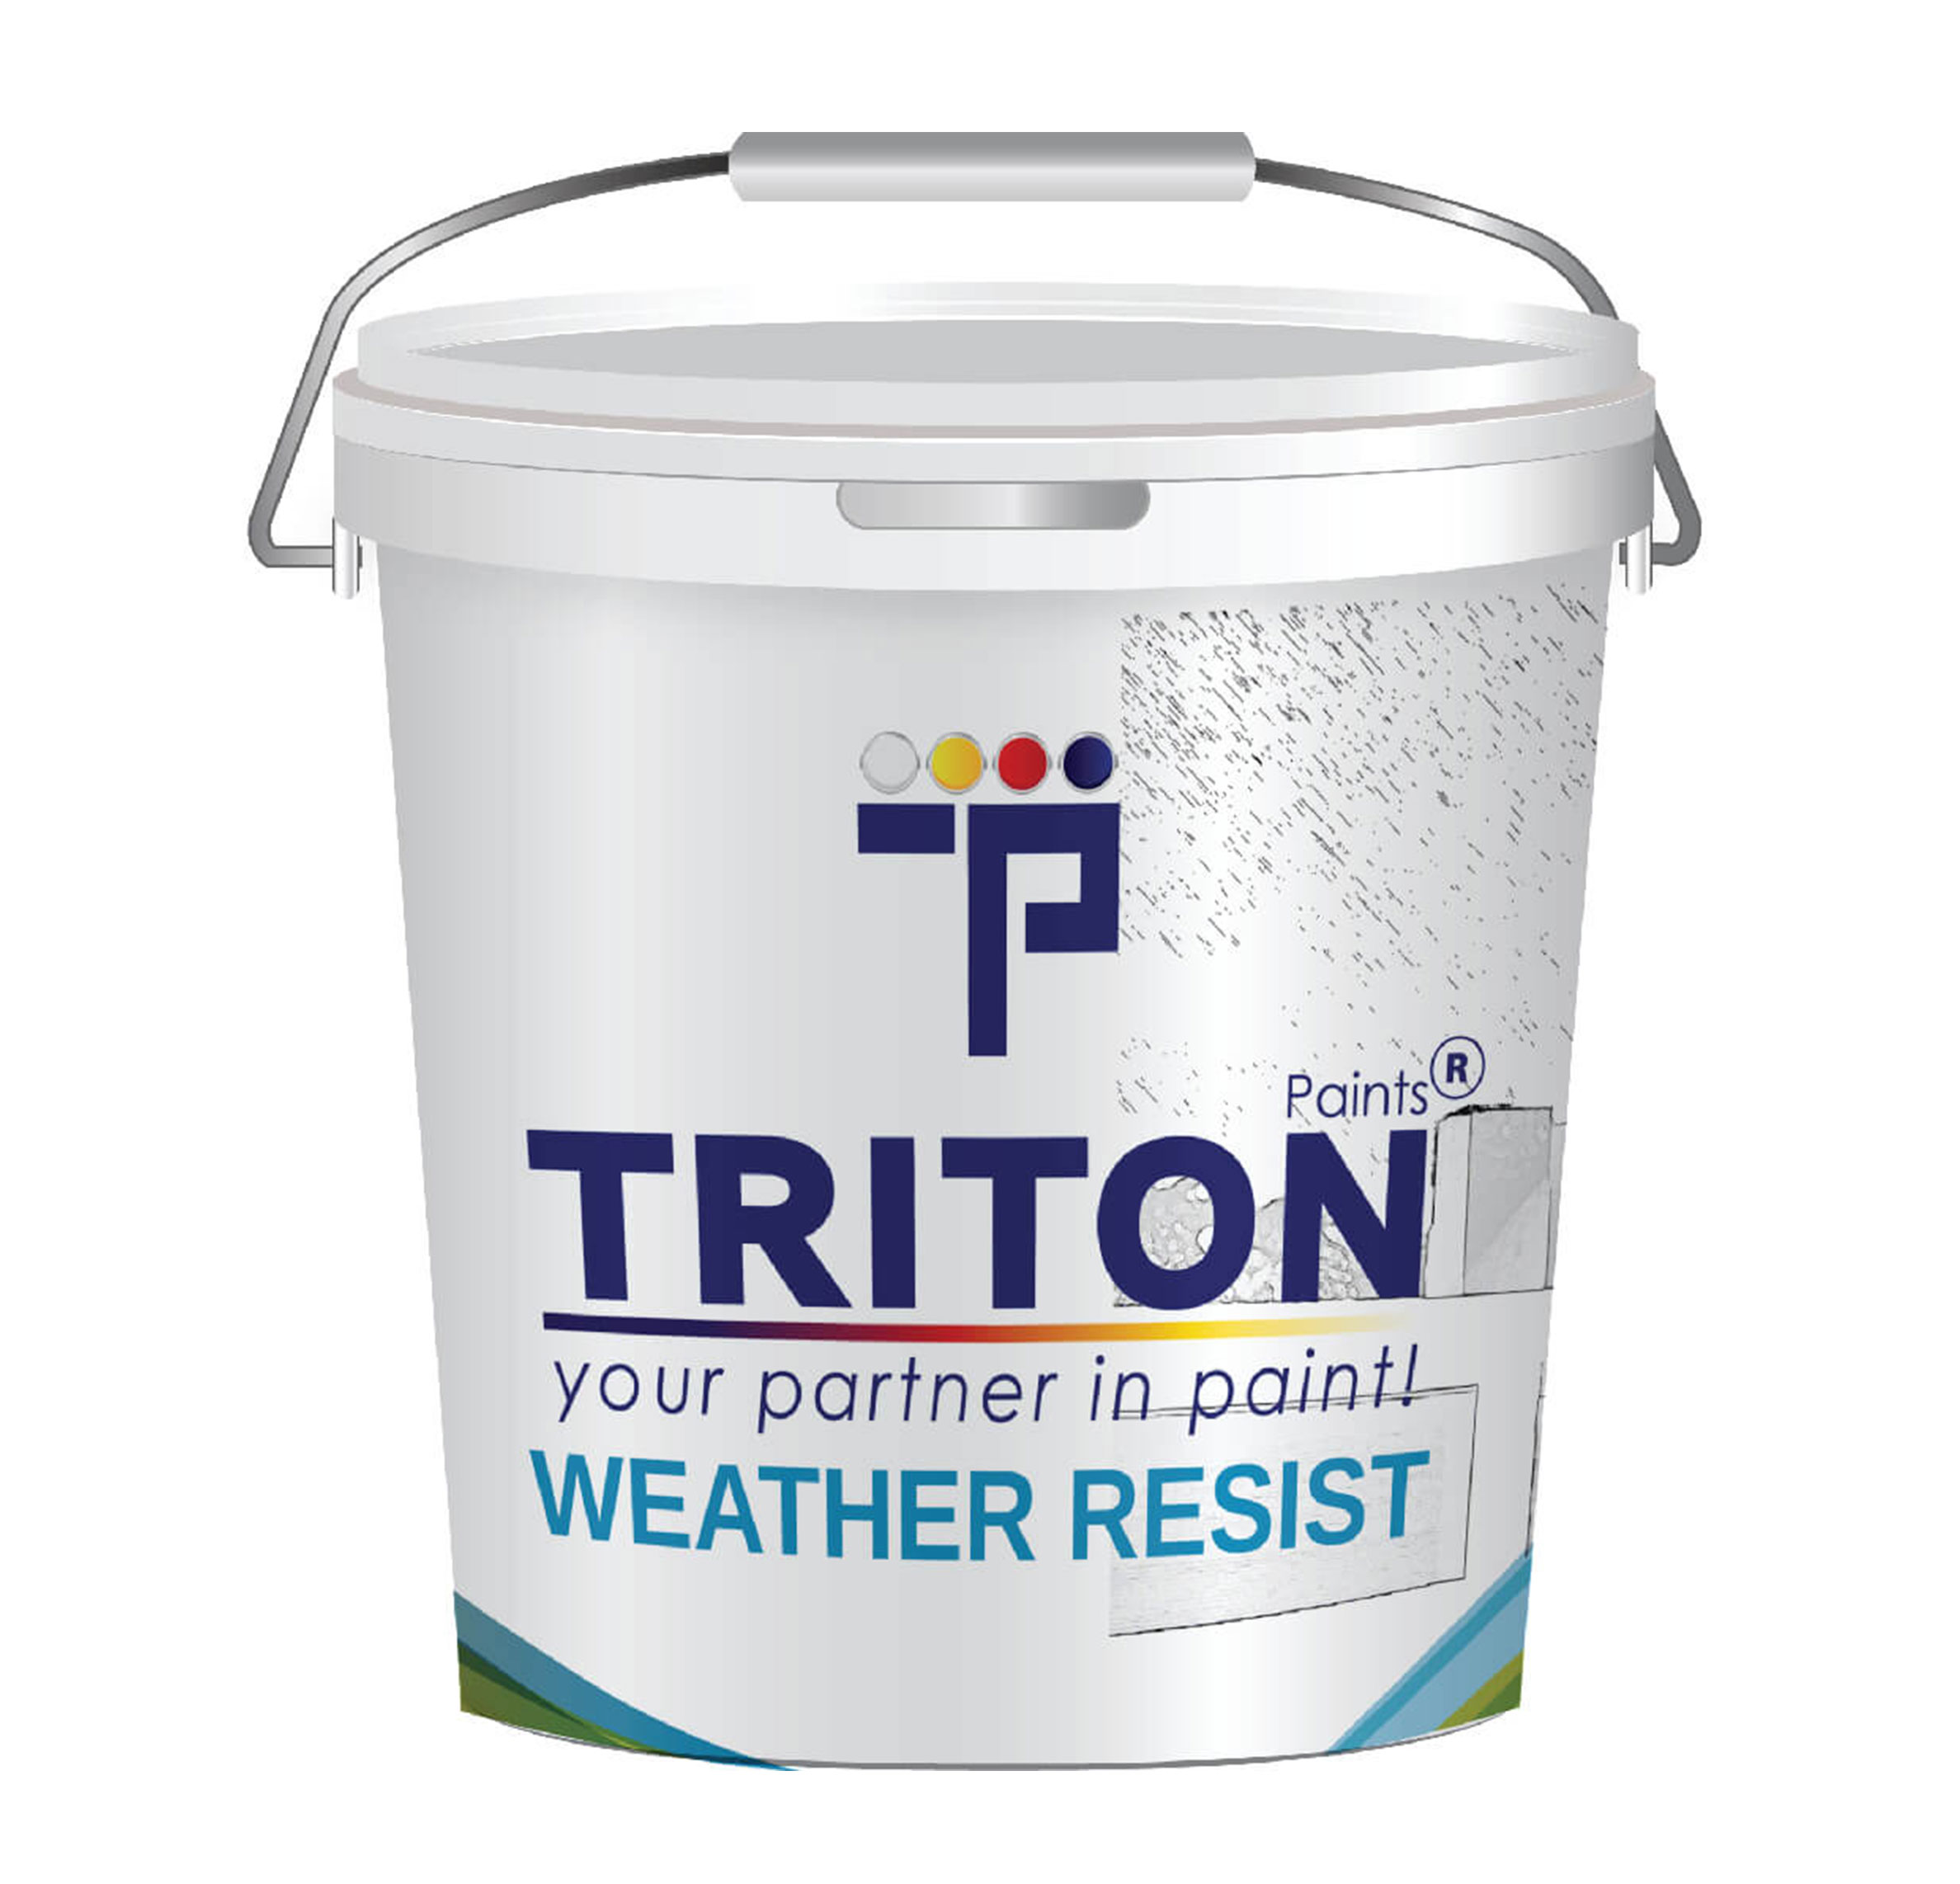 Weather resist emulsion